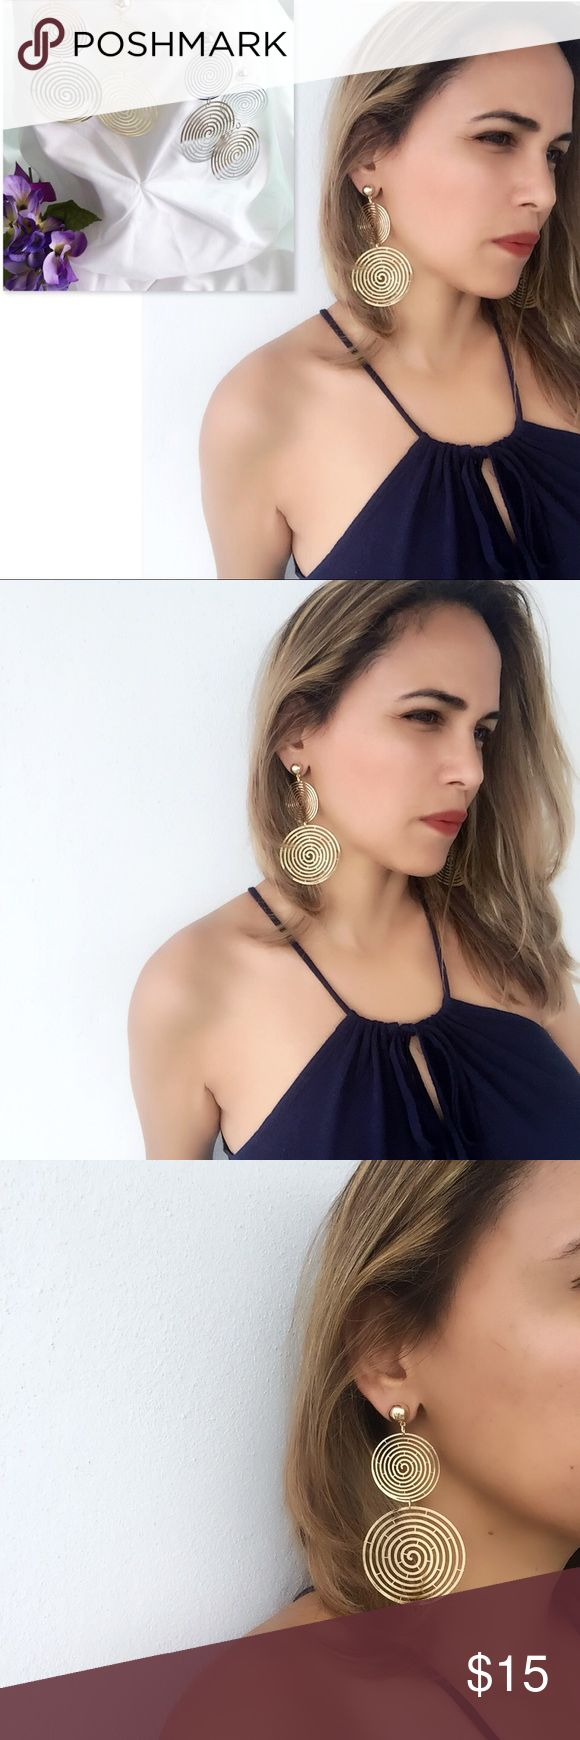 """✨NEW THIS WEEK💫Intriguing Chandelier Earrings ✨NEW THIS WEEK💫Intriguing Chandelier Earrings Nickel Free   If you love your jewelry to be your statement piece I recommend these elegant pair of earrings. You can effortlessly combine them with any outfit.  They are just there to make everything prettier.  Measurements: 2"""" wide 4"""" long Closure: Post back  🛍Bundle & Save!! 10% 2 items 15% 3+ items  💝No Trades MischkaPu Jewelry Earrings"""